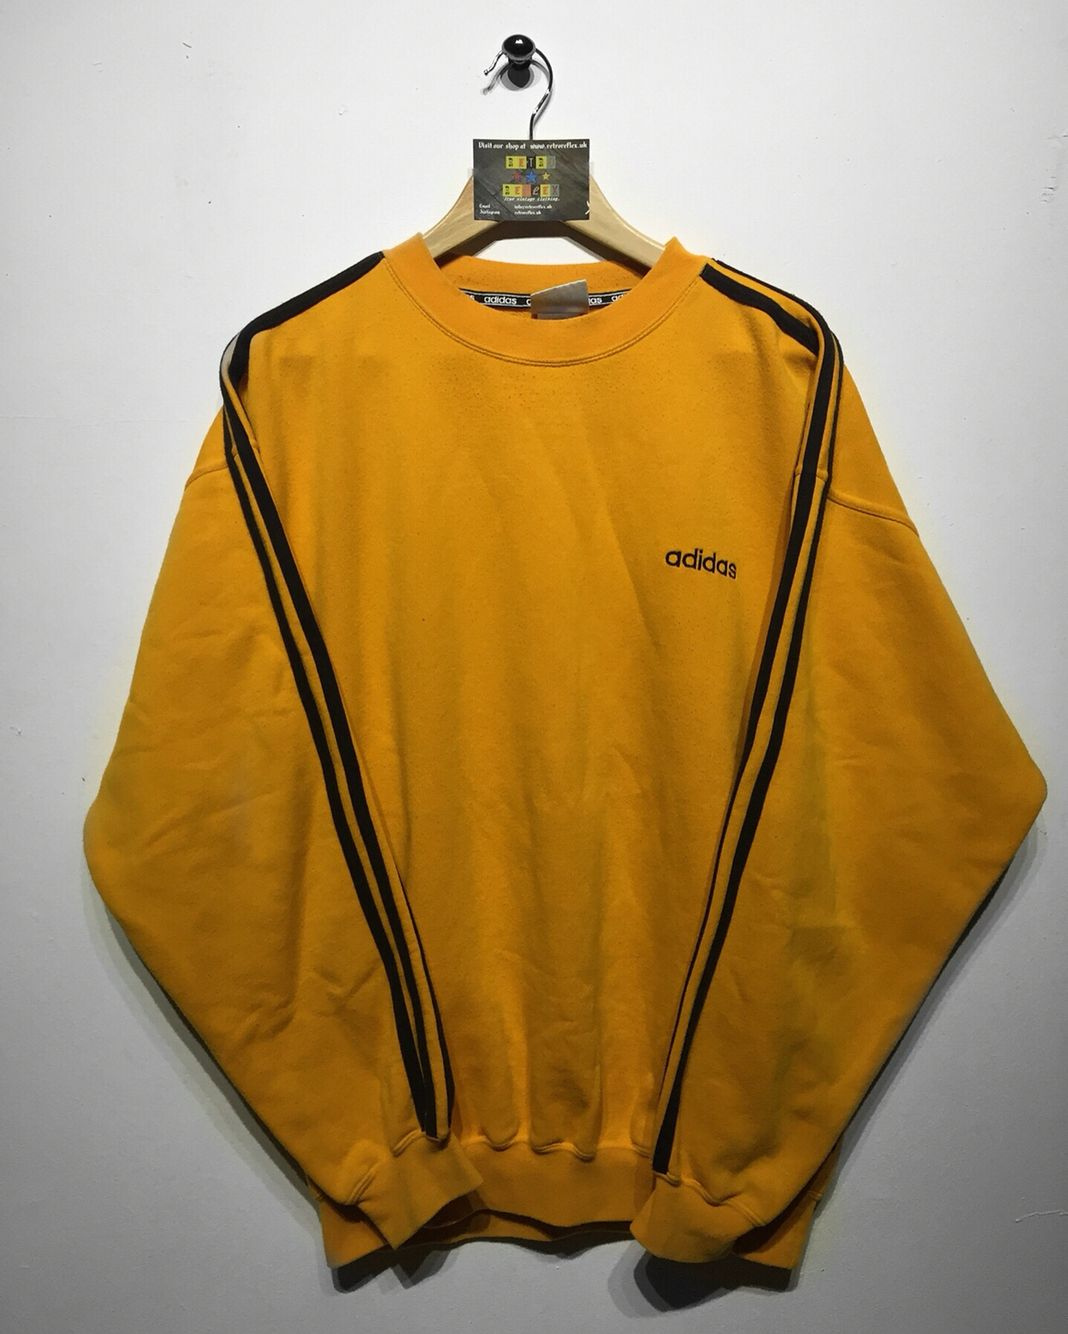 Adidas Sweatshirt Size X Large 163 36 Website ️ Www